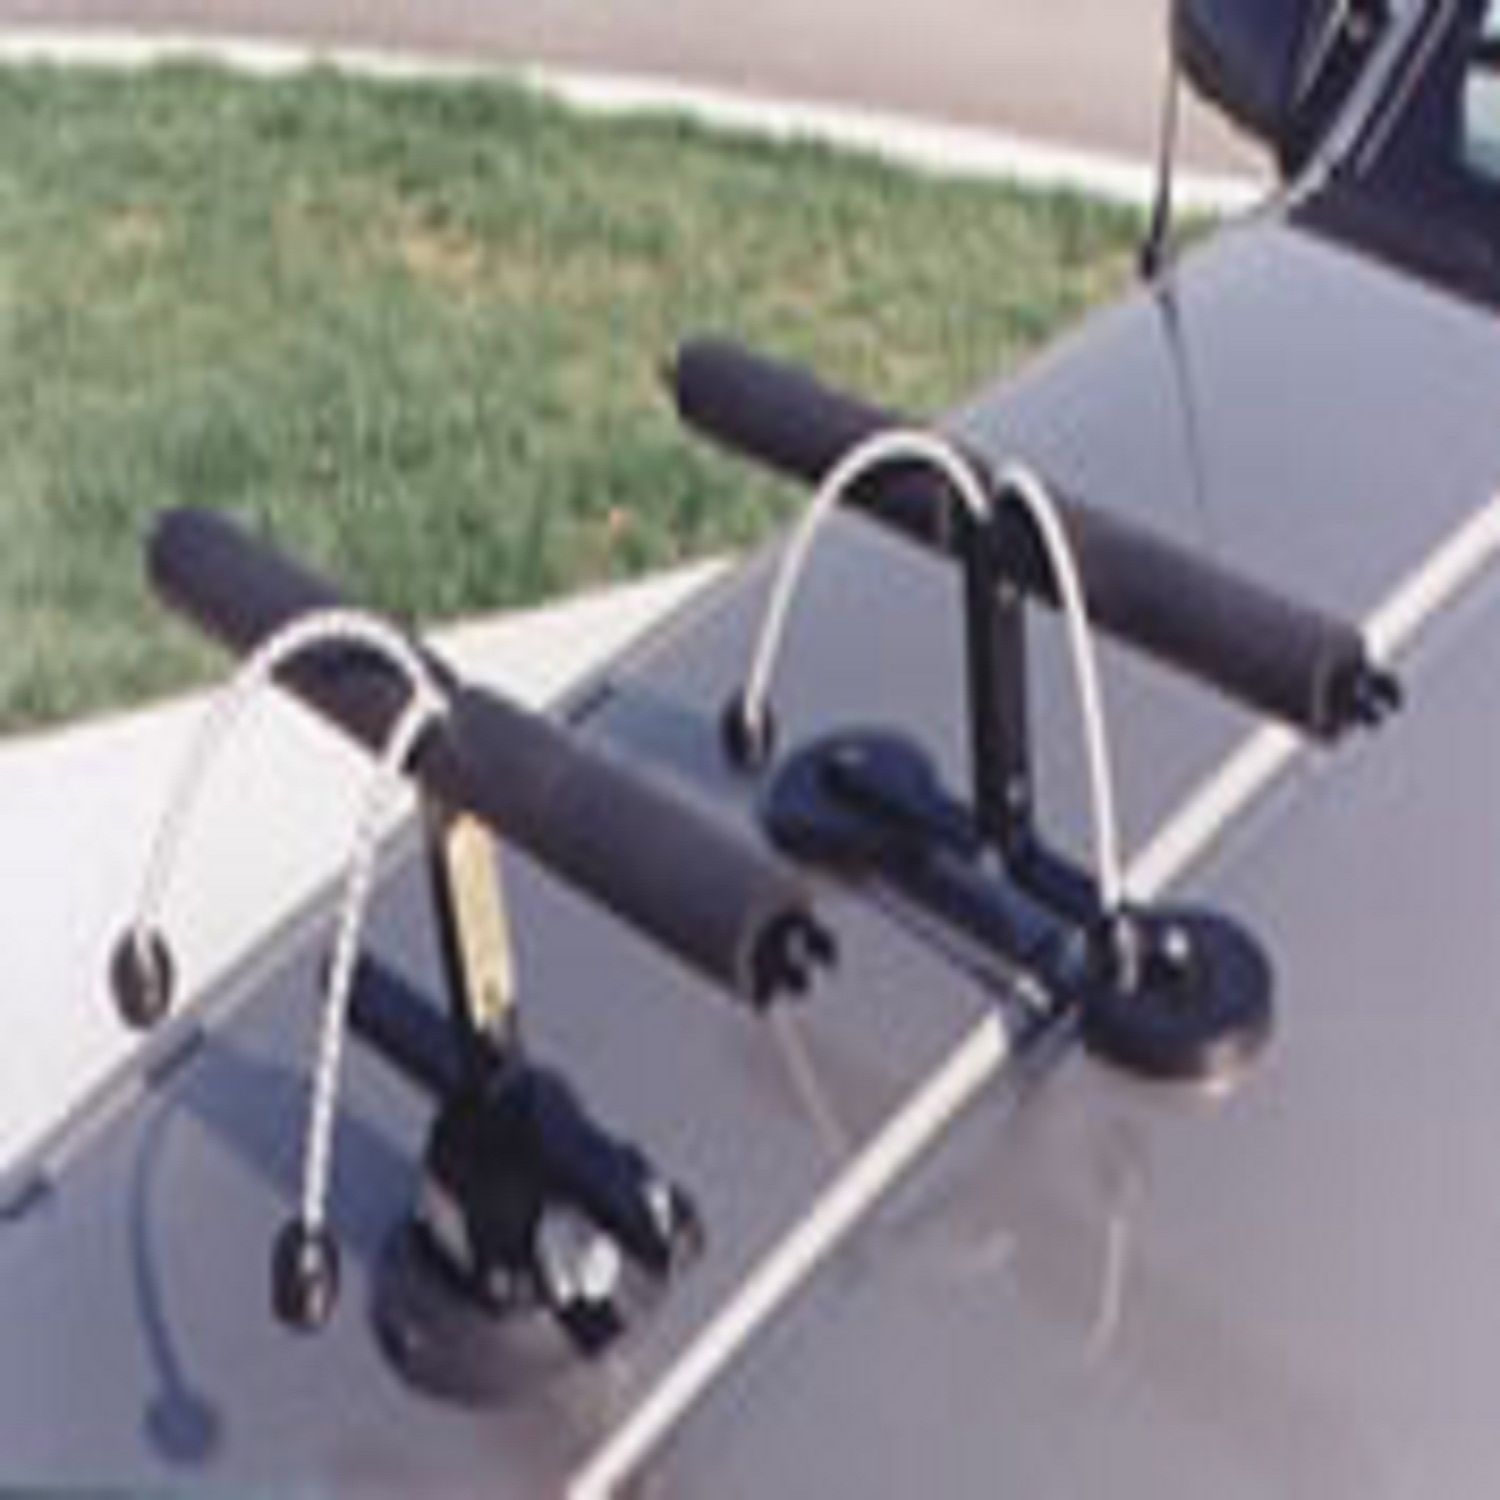 DOUBLE VACUUM ROD RACKS - FISHING ROD TRANSPORTING SYSTEM...